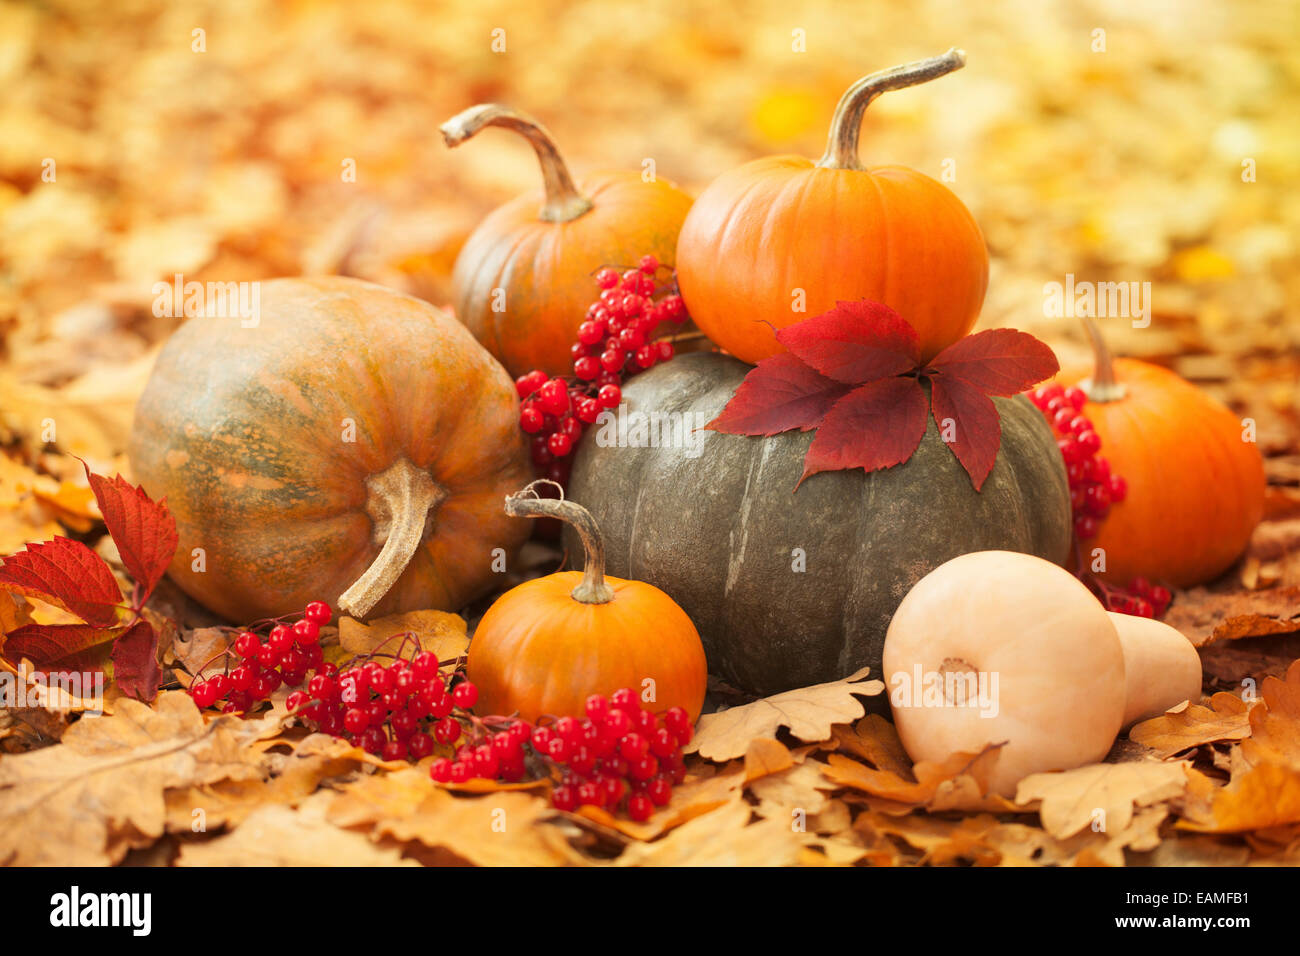 Pumpkins in a garden - Stock Image